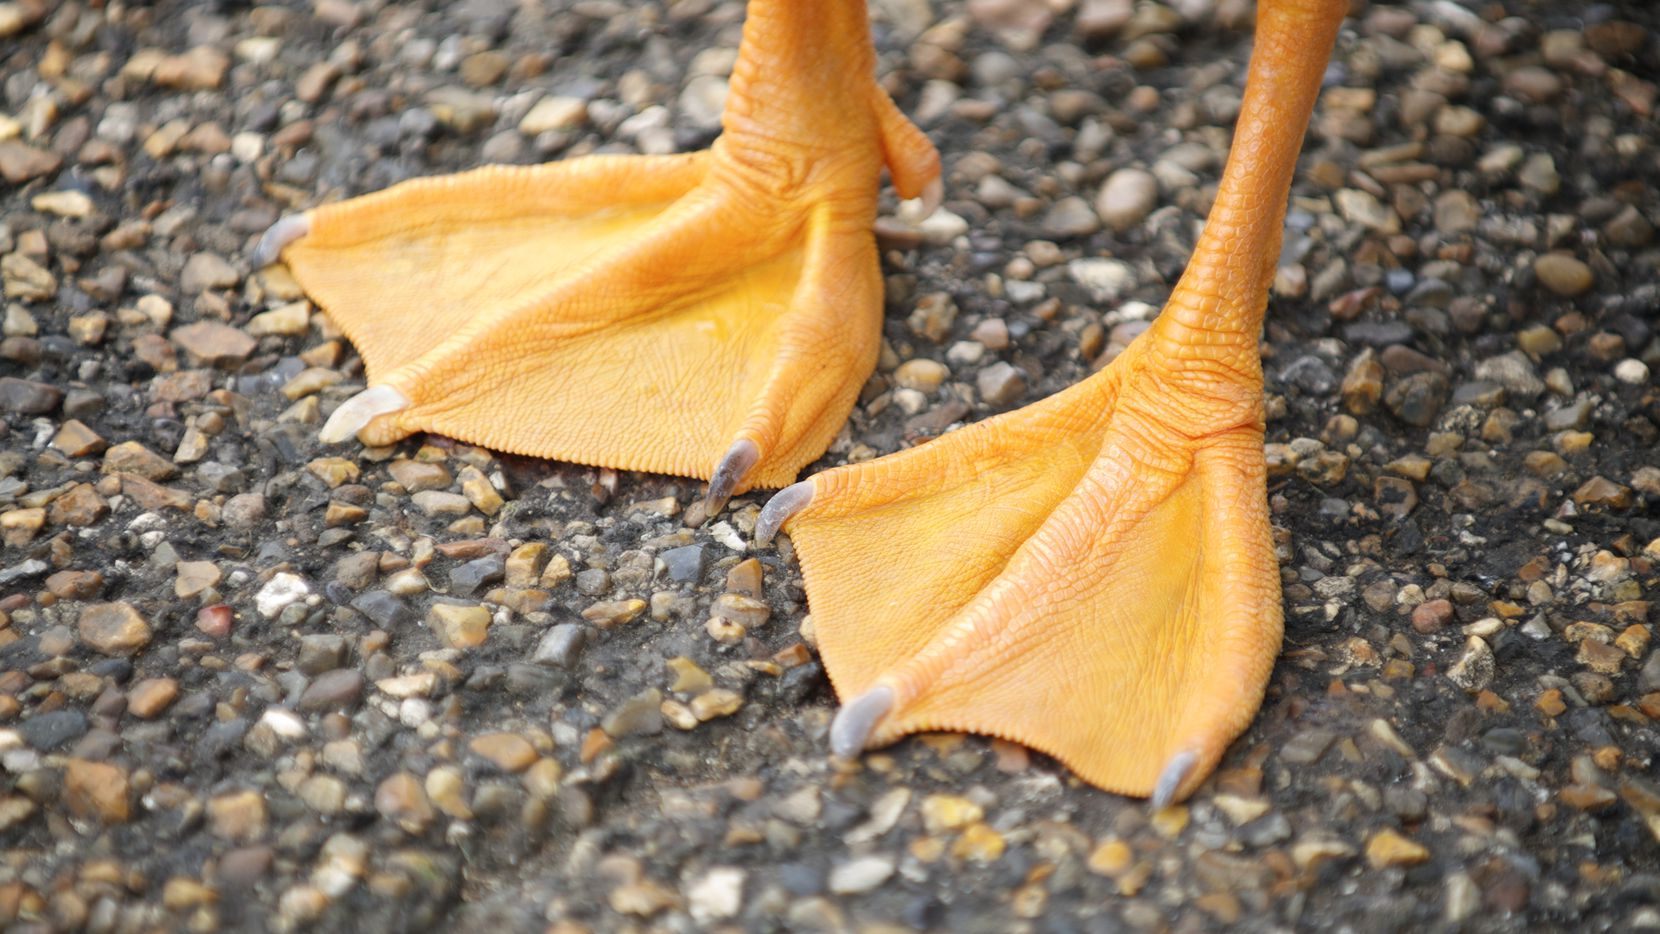 Pair of bright orange webbed feet from an unrecognizable bird stand on textured stone background